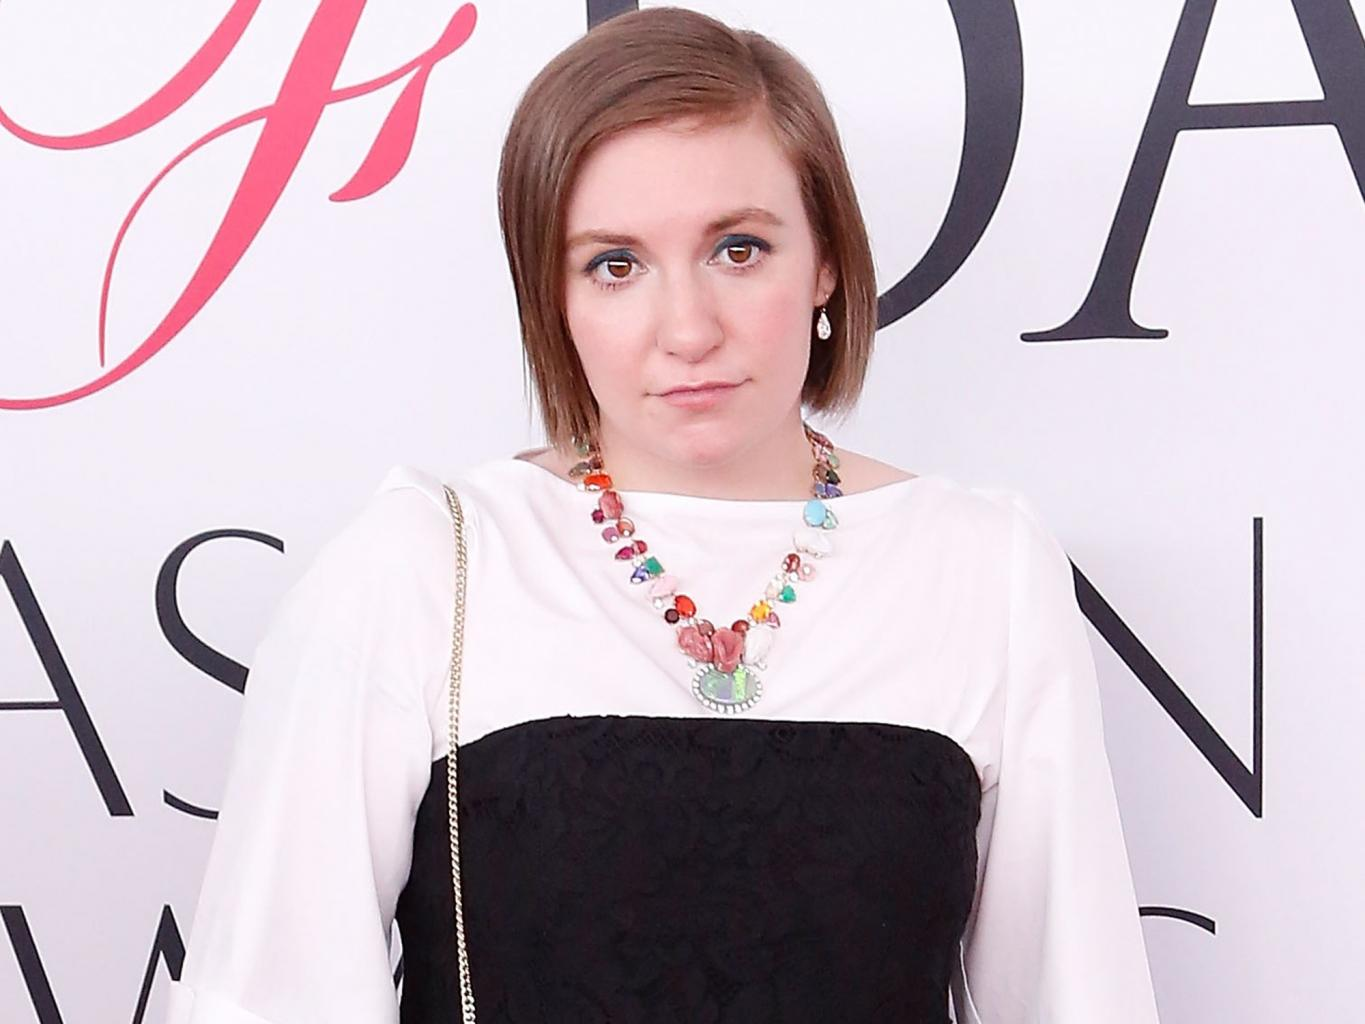 Lena Dunham Reveals What It's Like Living with Endometriosis in Latest Podcast Episode